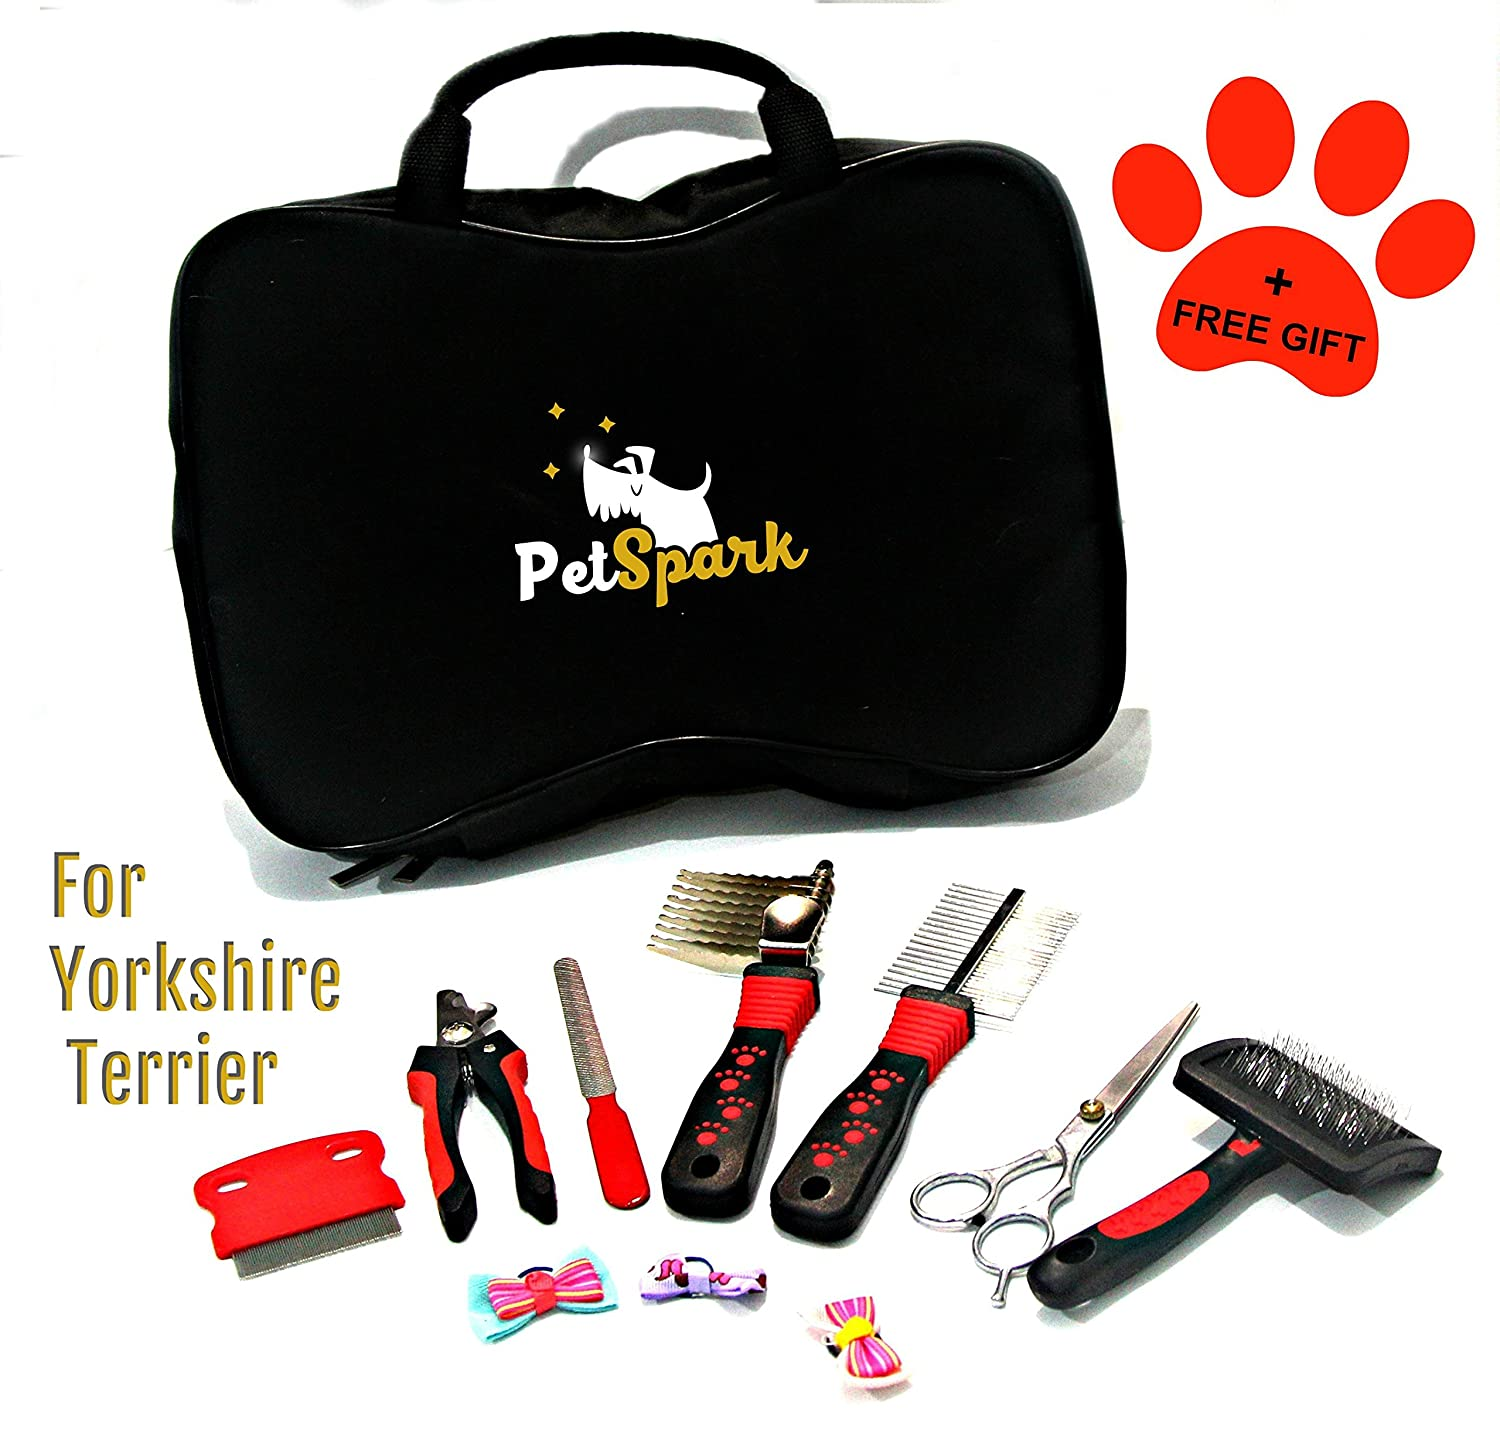 PetSpark Home Grooming Kit for Yorkshire Terrier, Special Design Set Contains All The Tools You Need to Groom Your Yorkie. Stainless Steel, Small Size, Easy to use and Carry w 3 Hair Bows Included